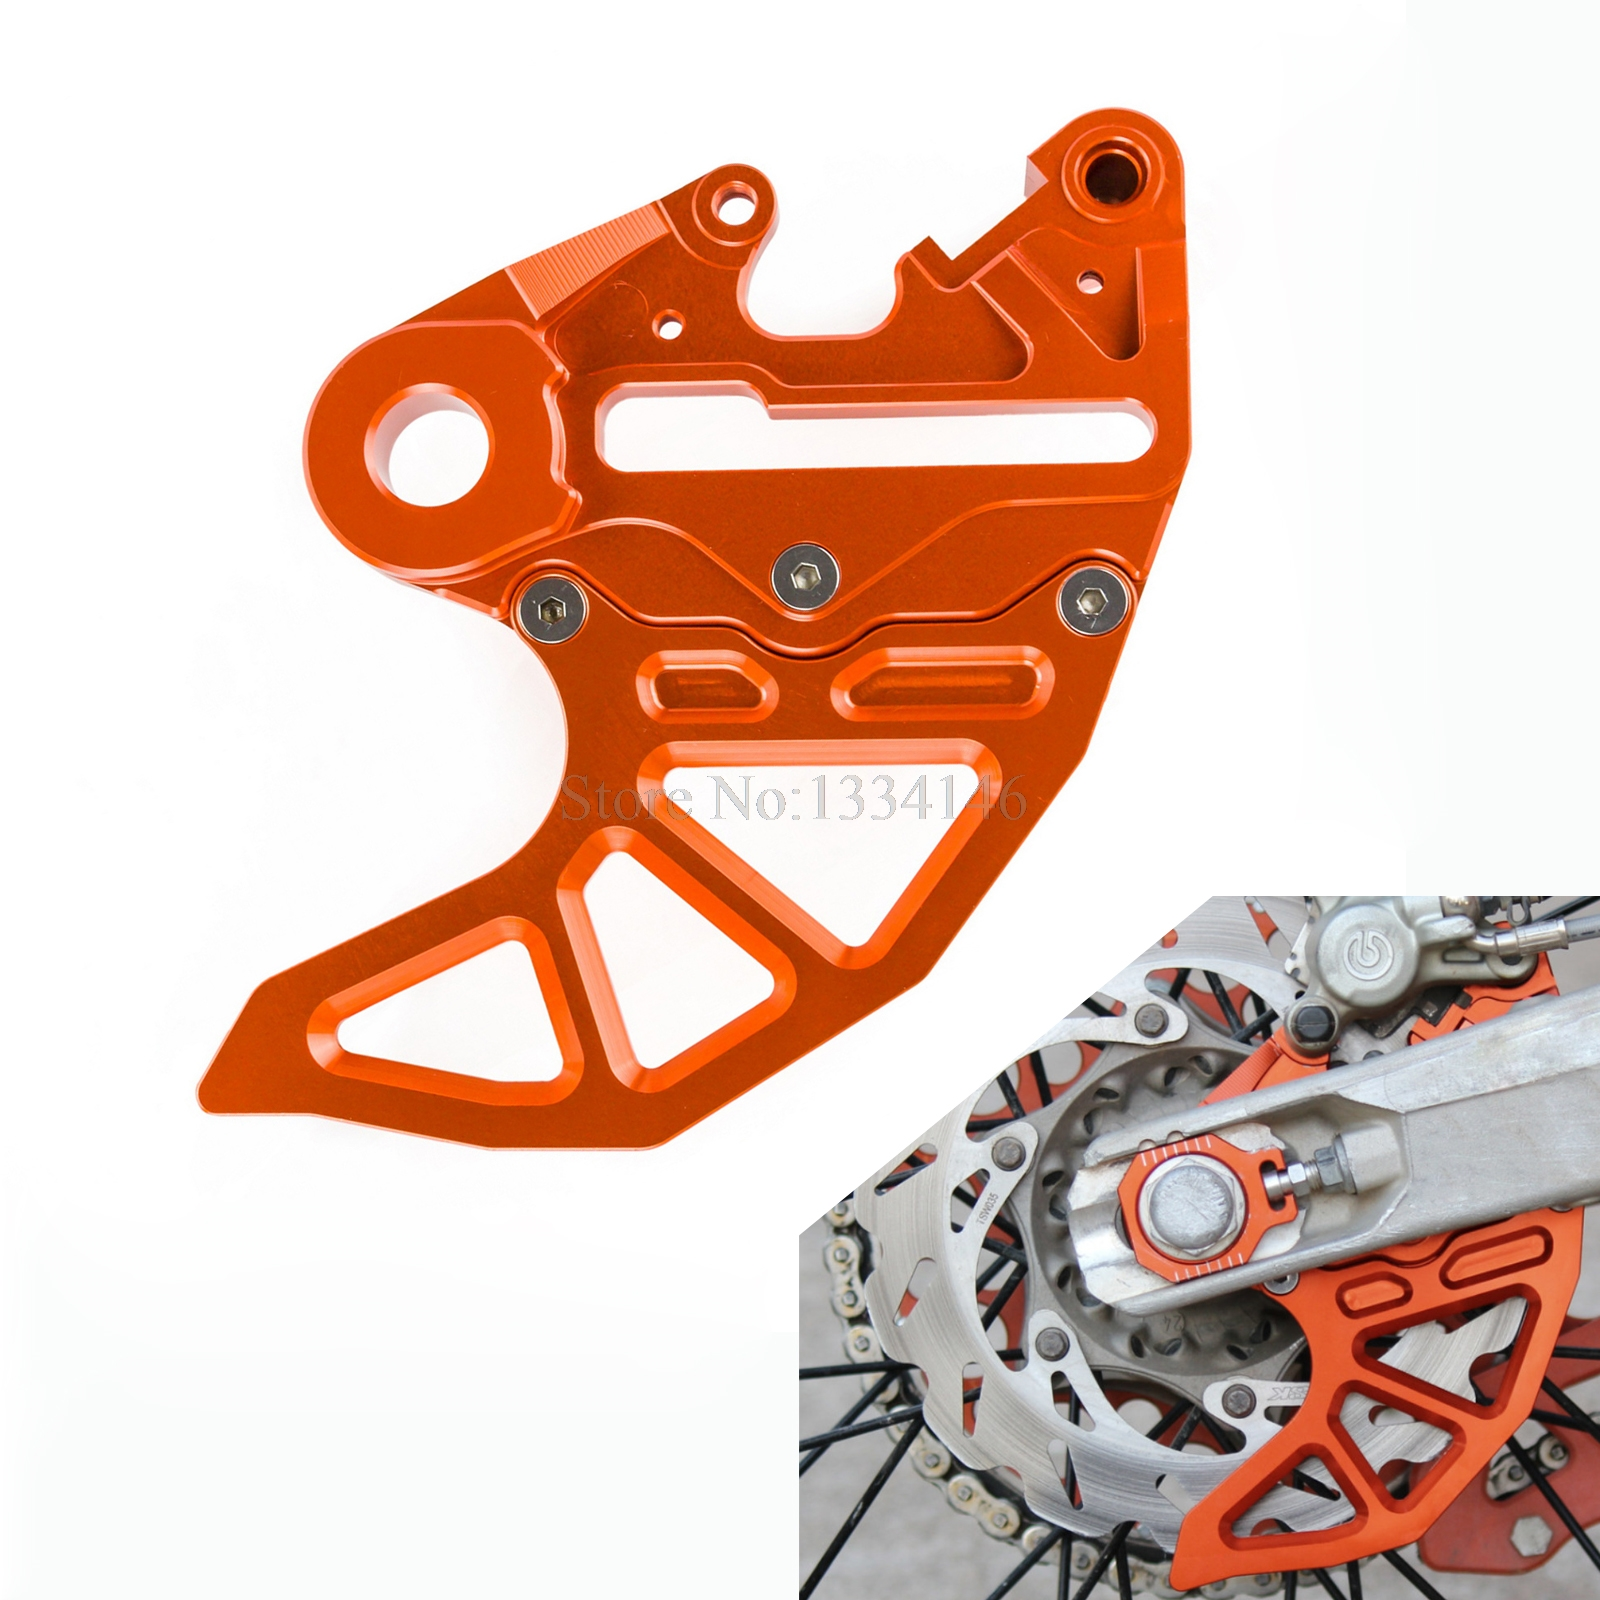 NICECNC Rear Brake Disc Guard For KTM 125 150 200 250 300 350 450 500 530 SX SXF EXC EXCF XC XCF XCFW XCW 2017 2018 20/25mm Axle